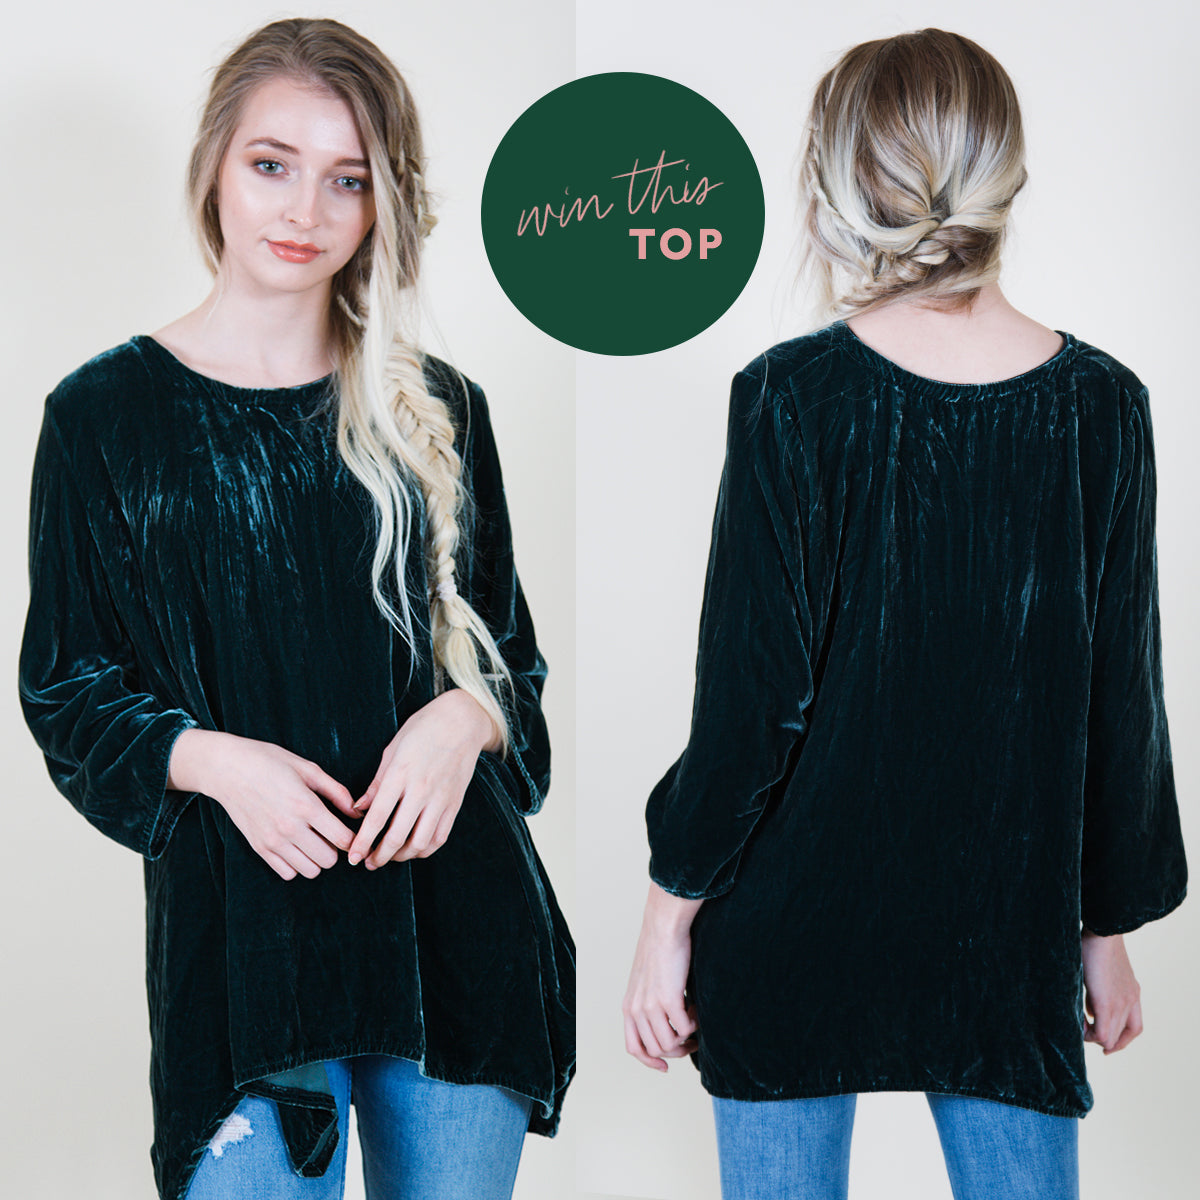 win a simple top